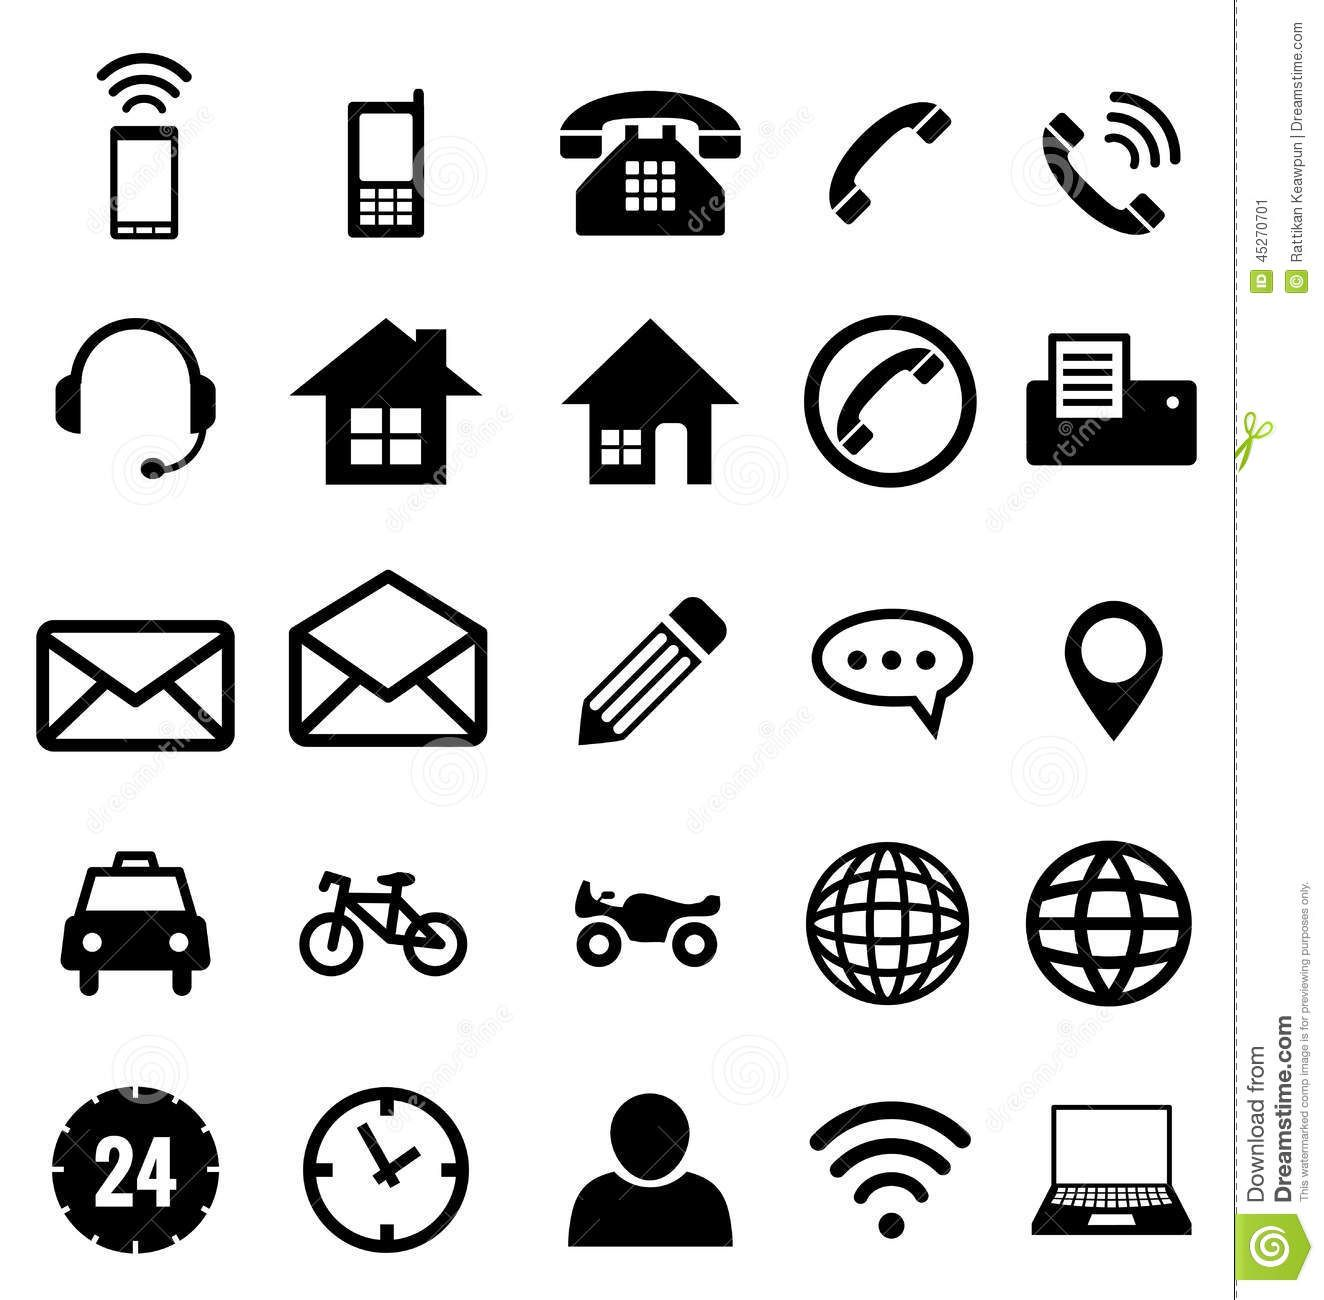 Contact Icon Collection For Business Stock Vector